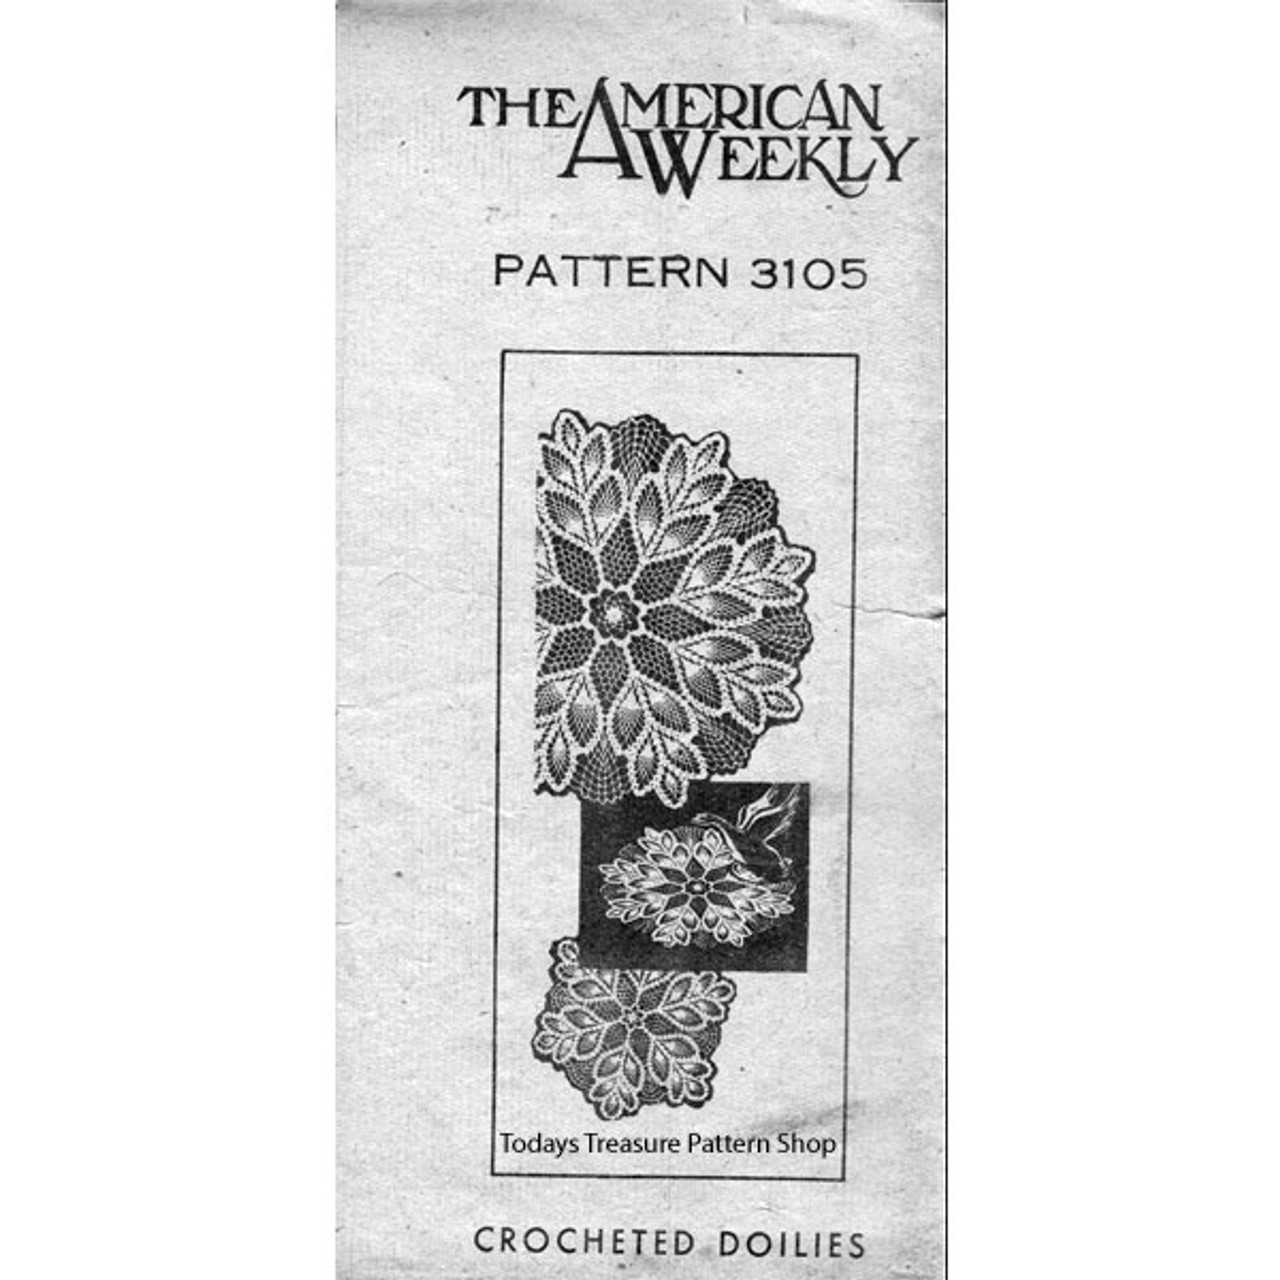 American Weekly 3105, Pineapple Doily Crochet pattern